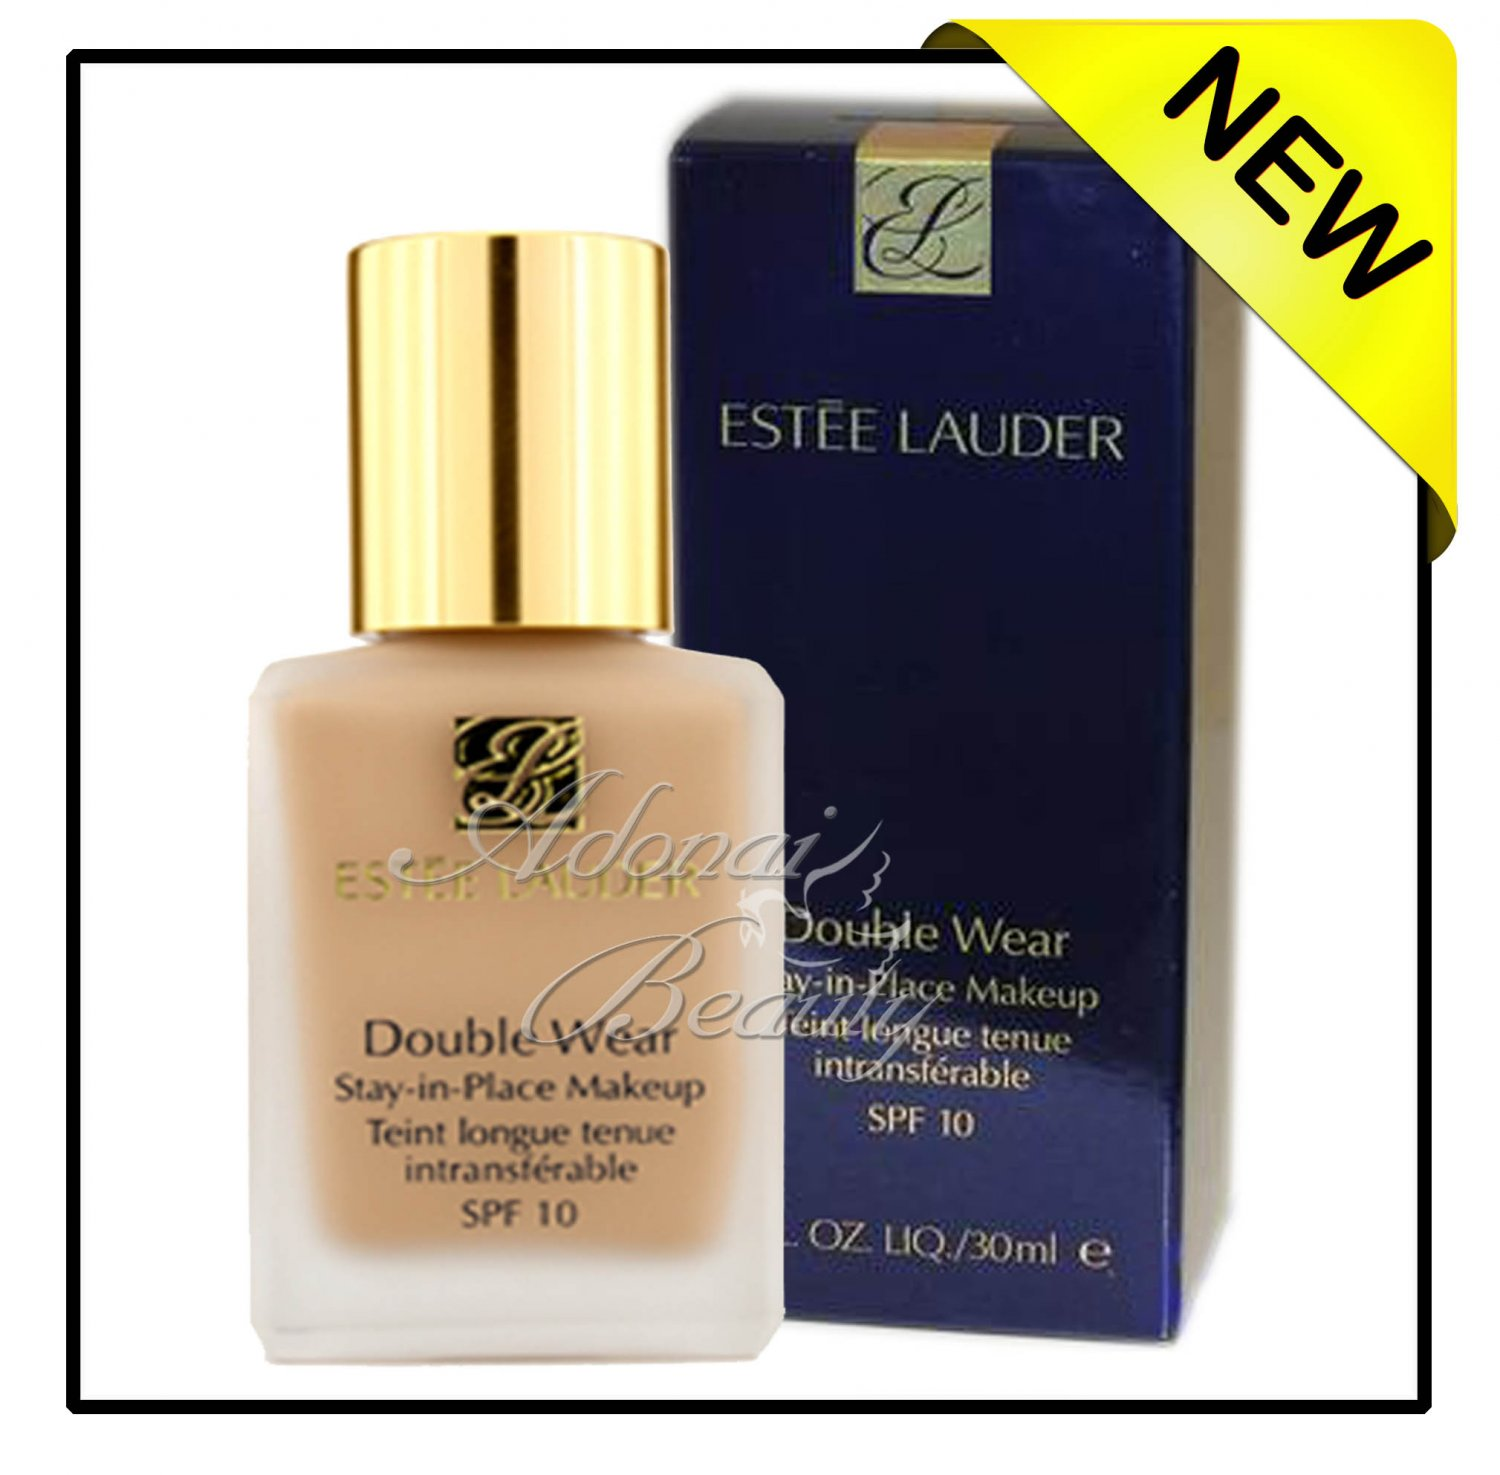 ESTEE LAUDER 36 SAND (1W2) Stay in Place Makeup 30ml